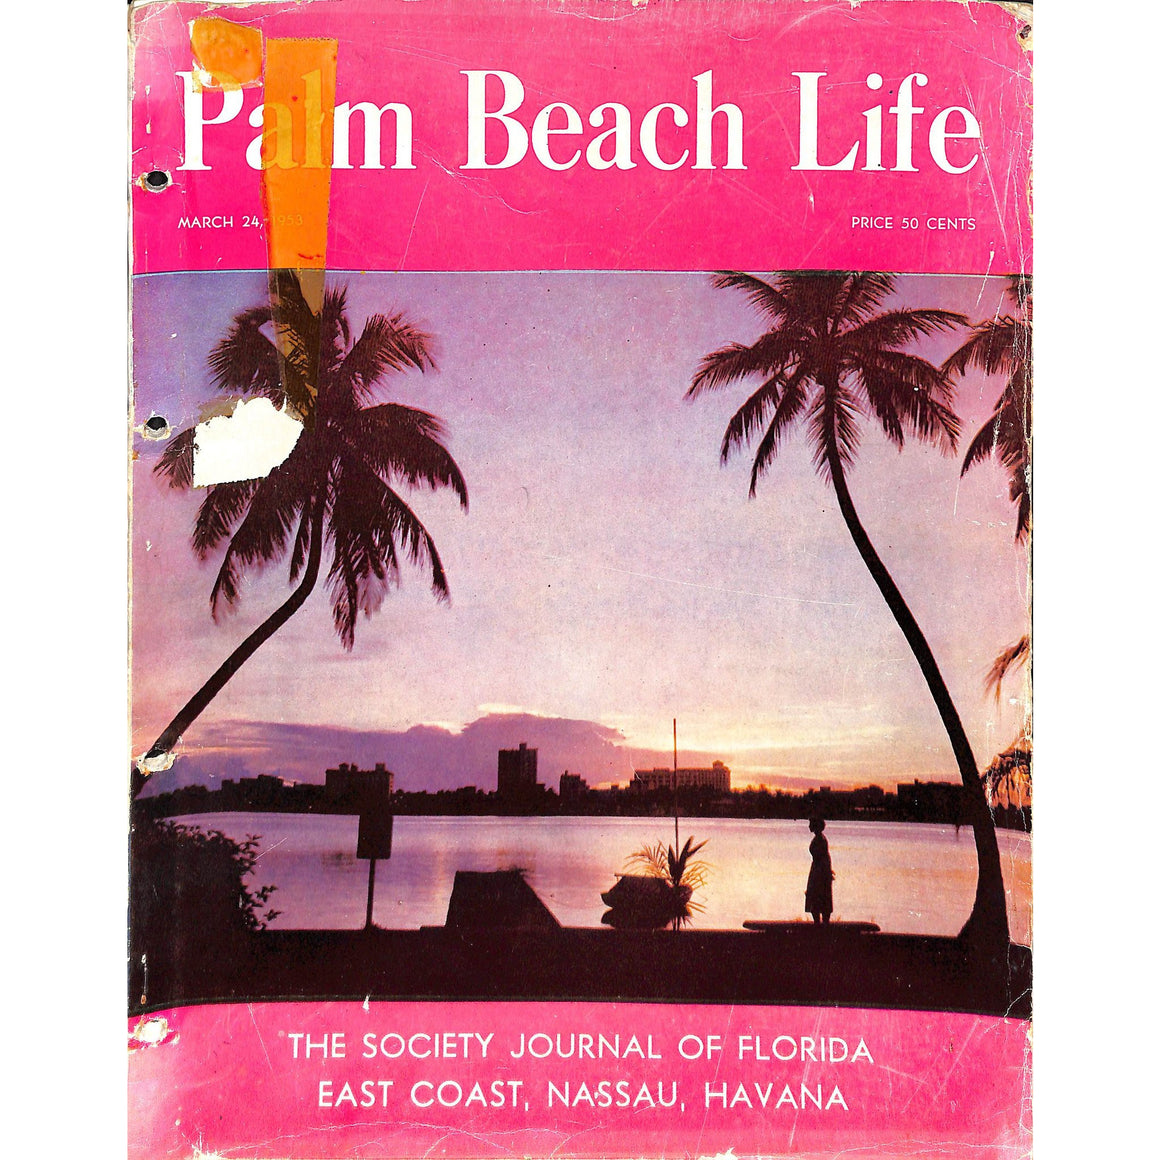 Palm Beach Life March 24, 1953